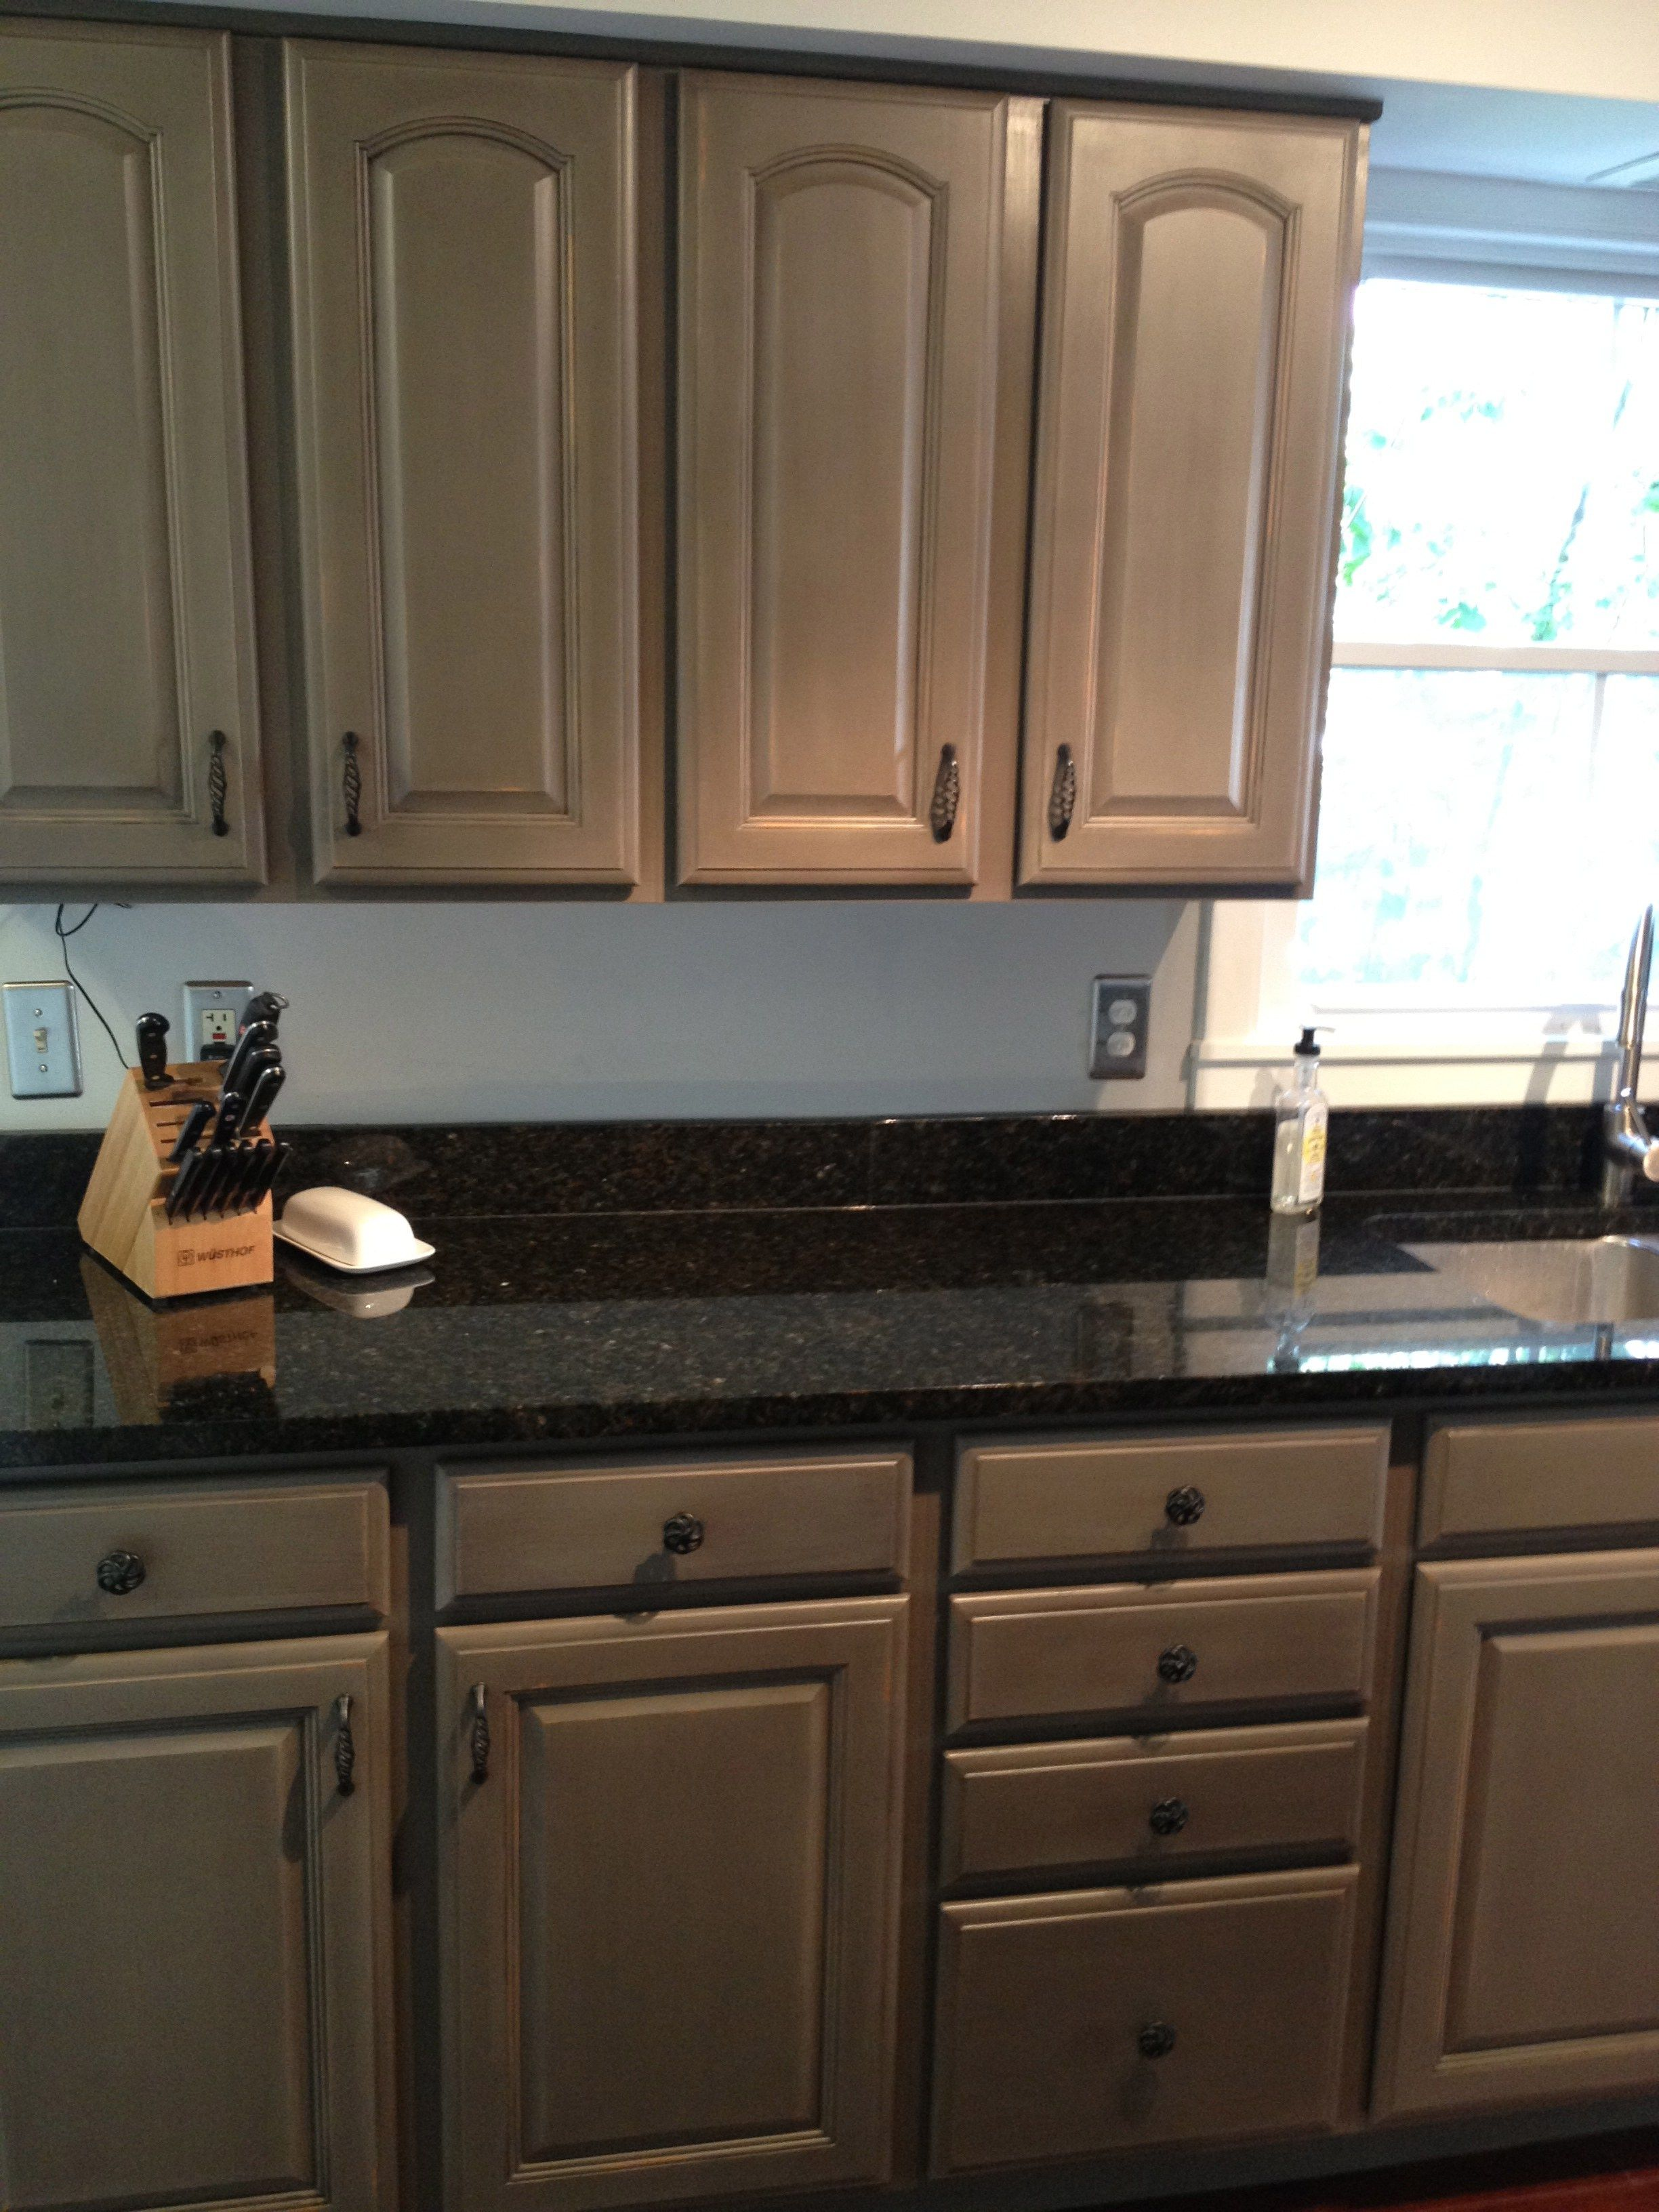 Annie Sloan Kitchen Cabinet Paint We Just Finished Painting Kitchen Cabinets Using Annie